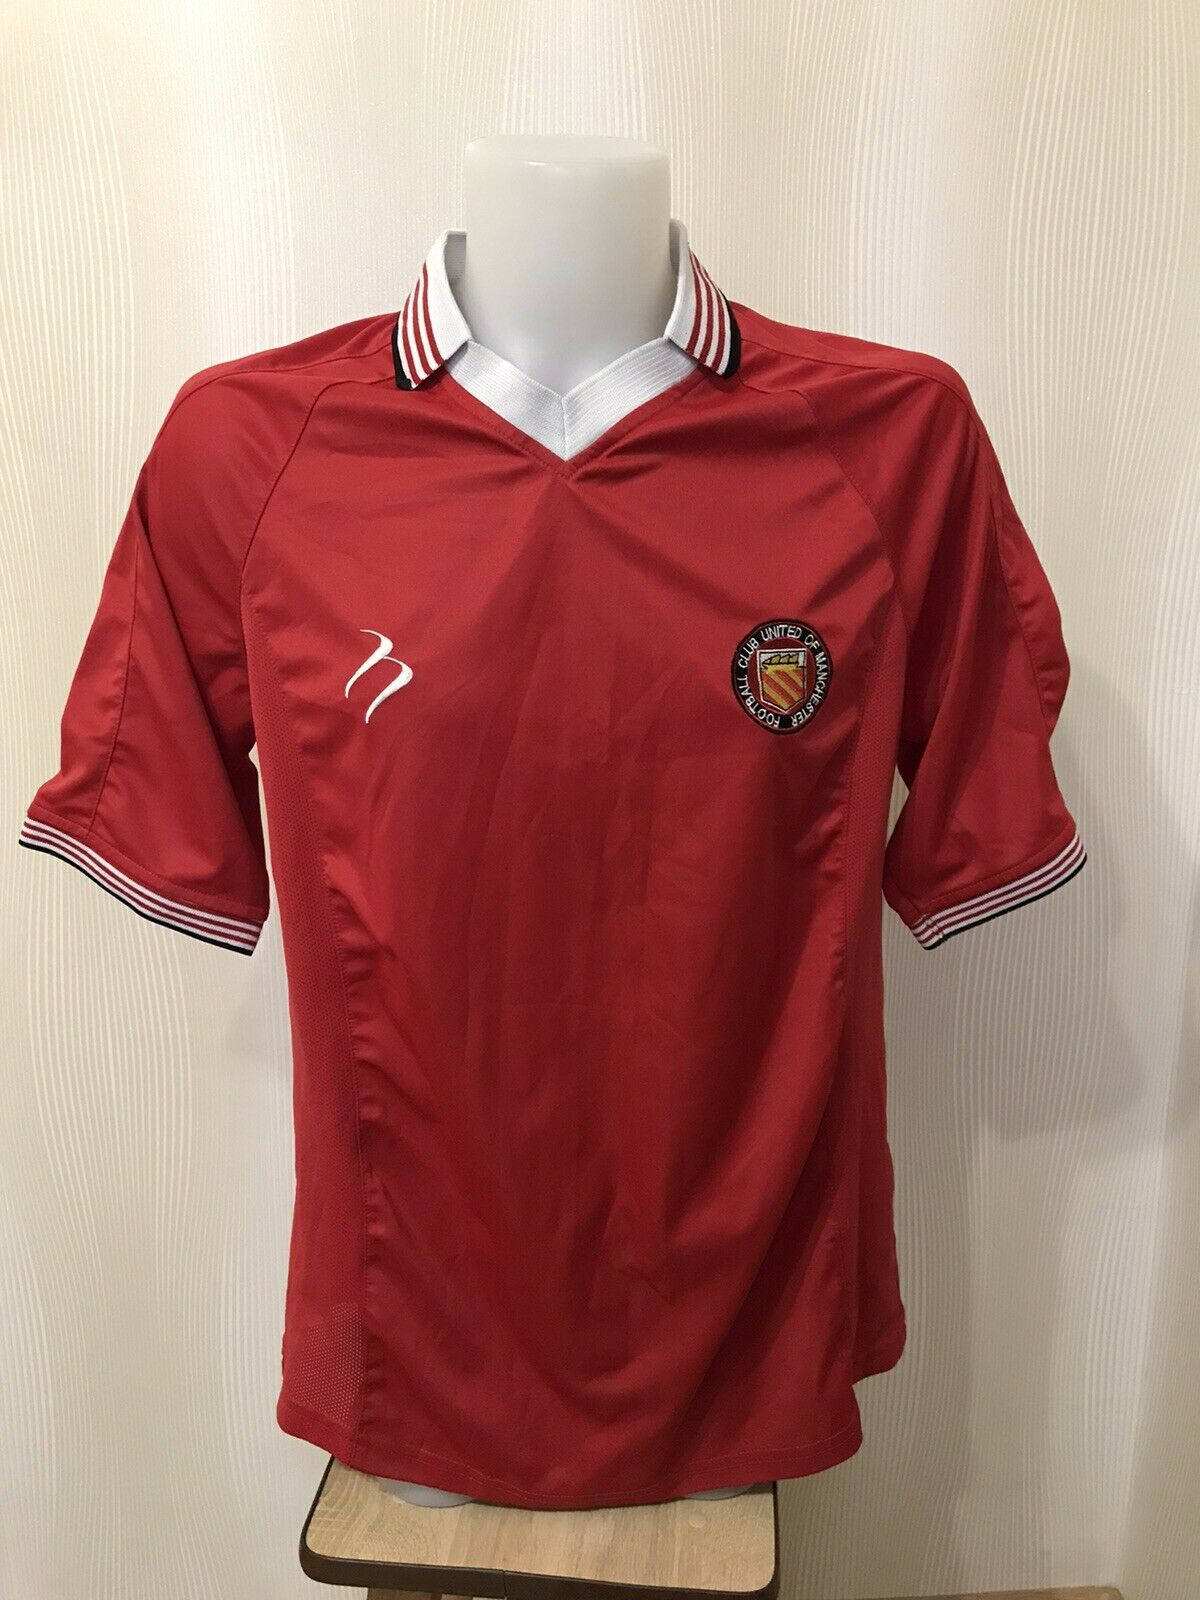 Football Club United Of Manchester Size XL jersey